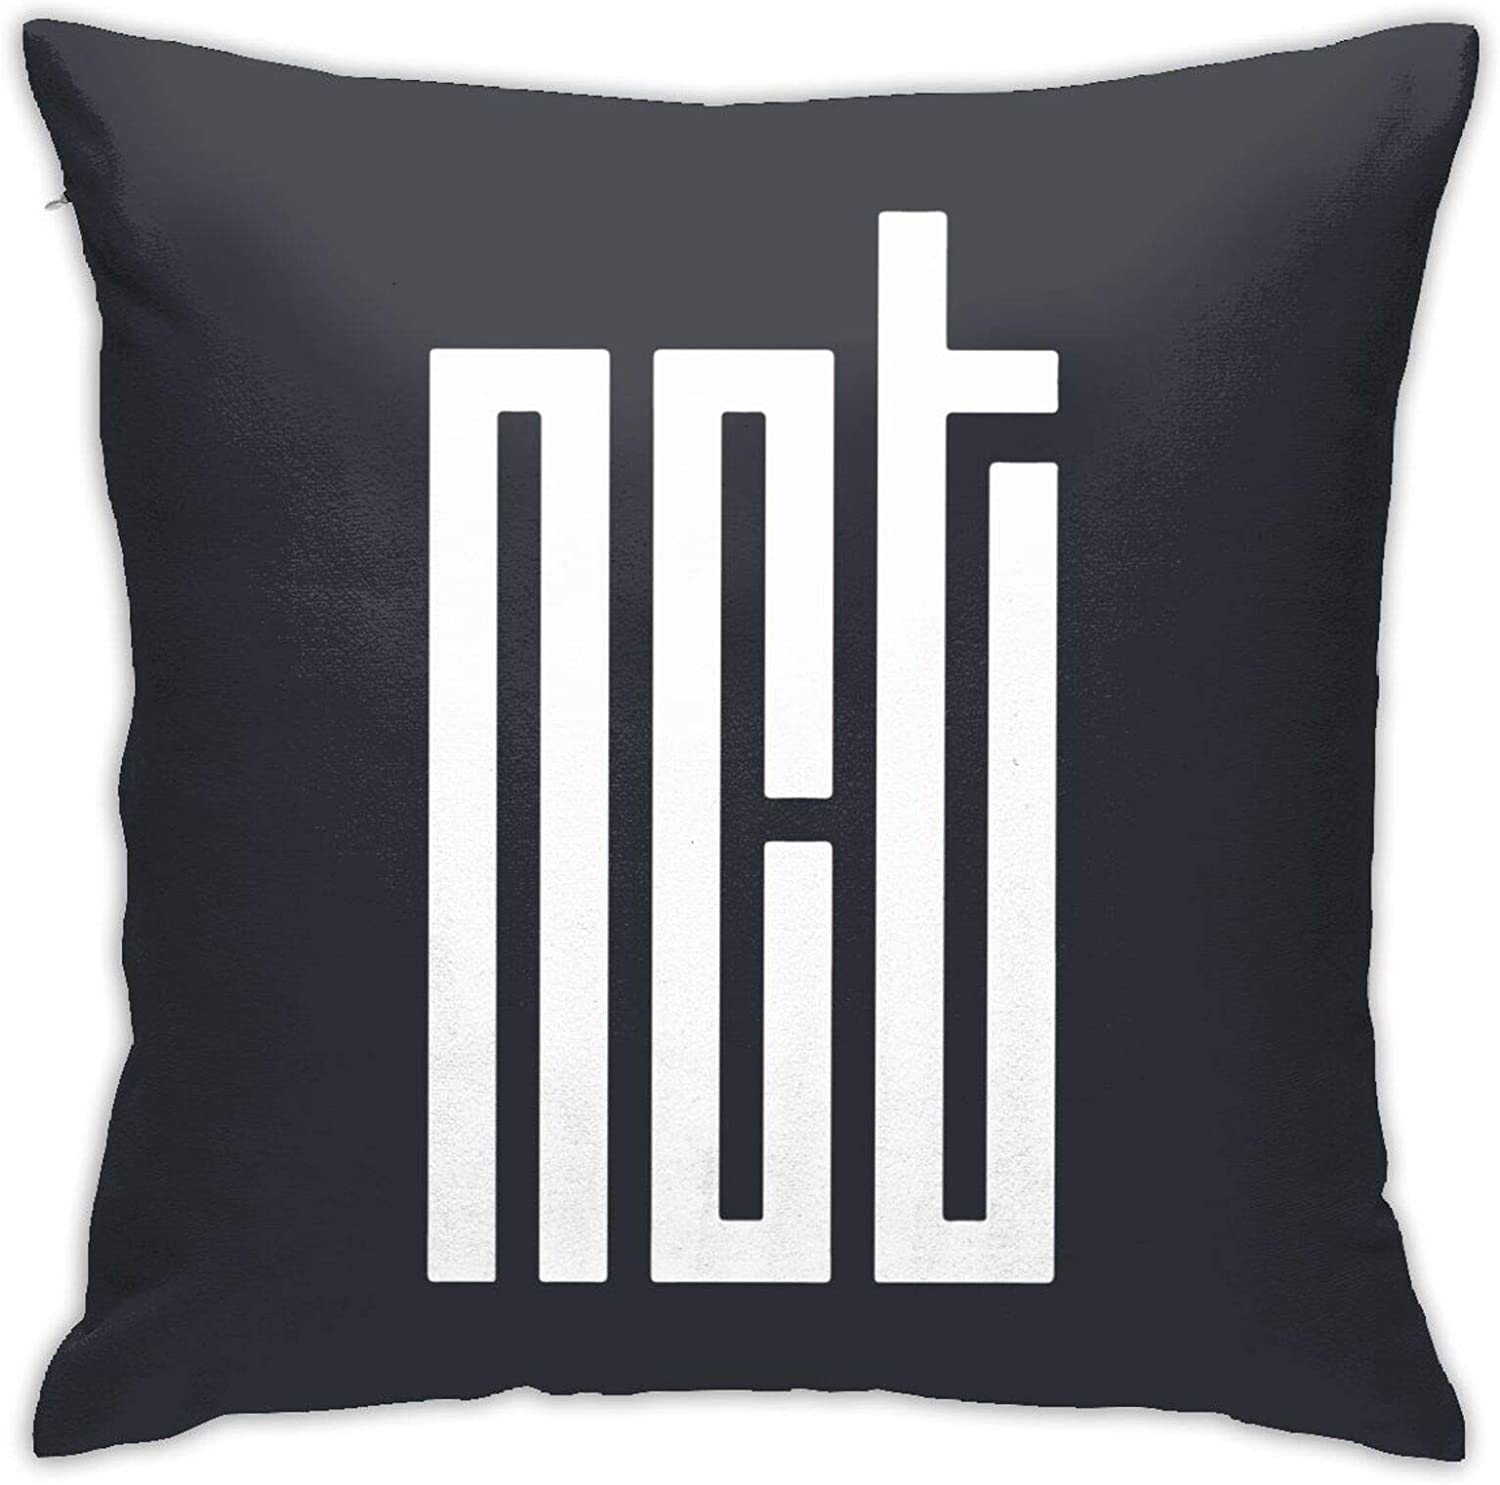 ETONKIDD NCT 2020 Home Decor Square Cover Pillow Cushion Covers Pillow Case, Soft Decorative Pillowcase for Couch Chair